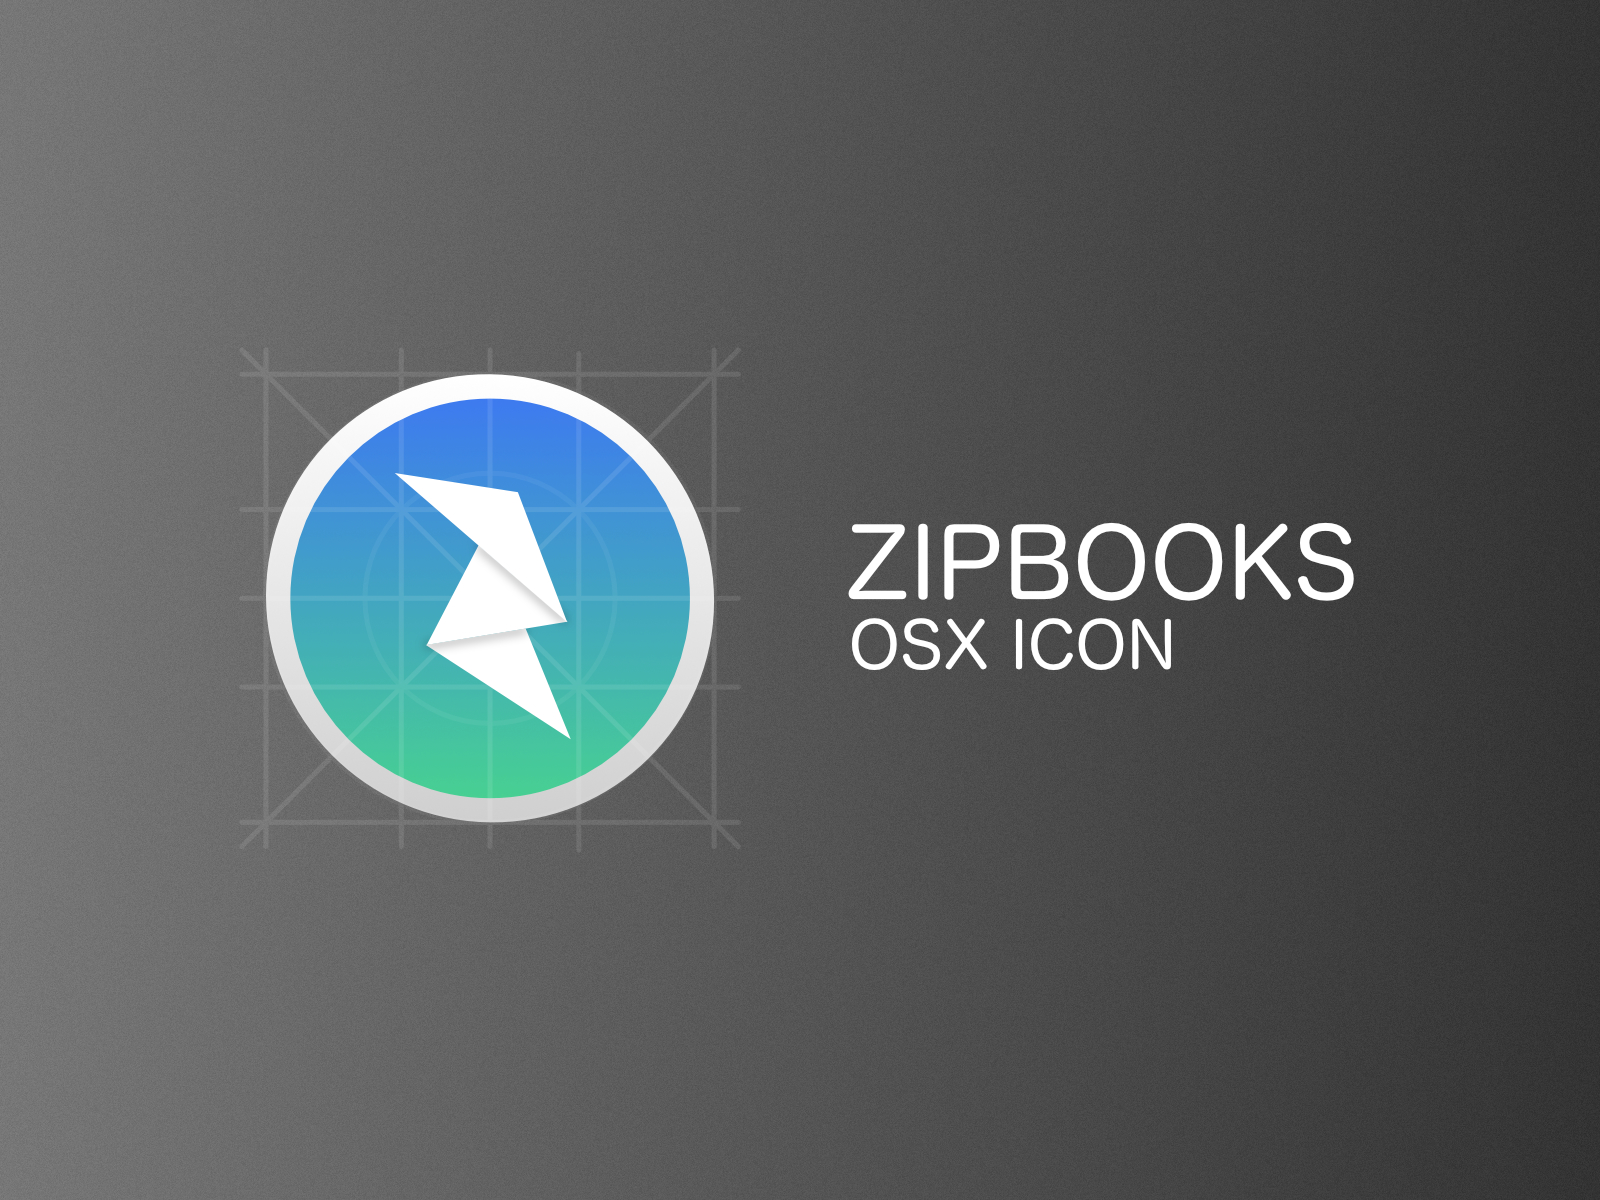 zipbooks_icon